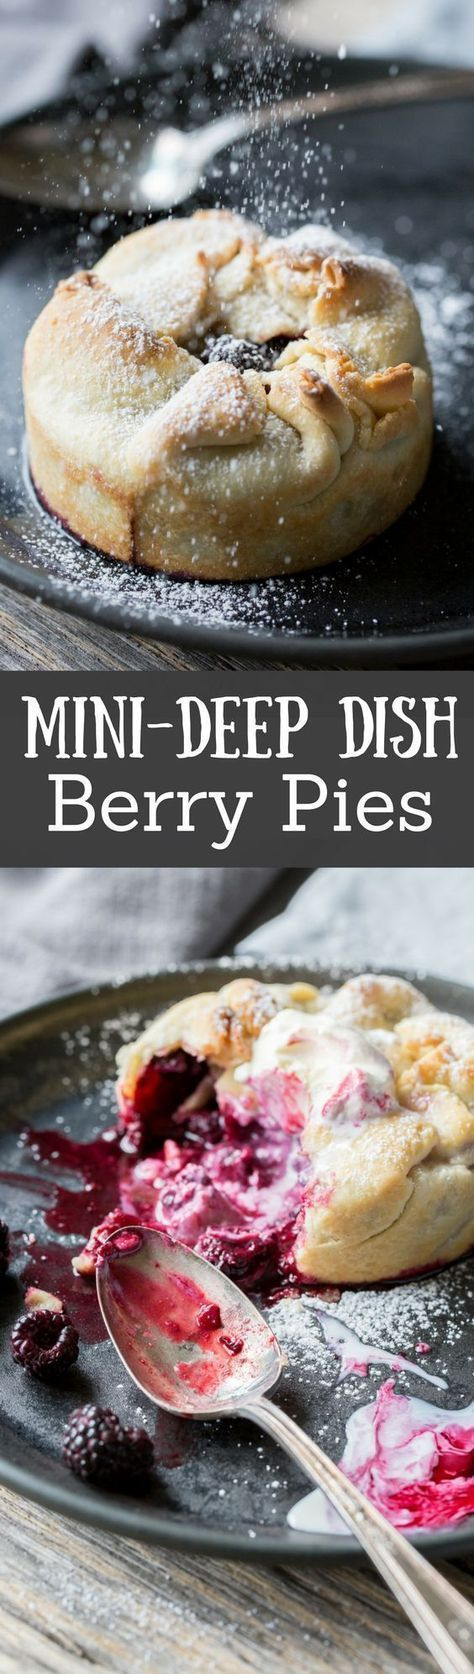 Mini Deep Dish Berry Pies made with Black Raspberries (any ripe berry in season will do) then dusted with powdered sugar, and topped with vanilla ice cream. www.savingdessert.com #berry #pie #minipies